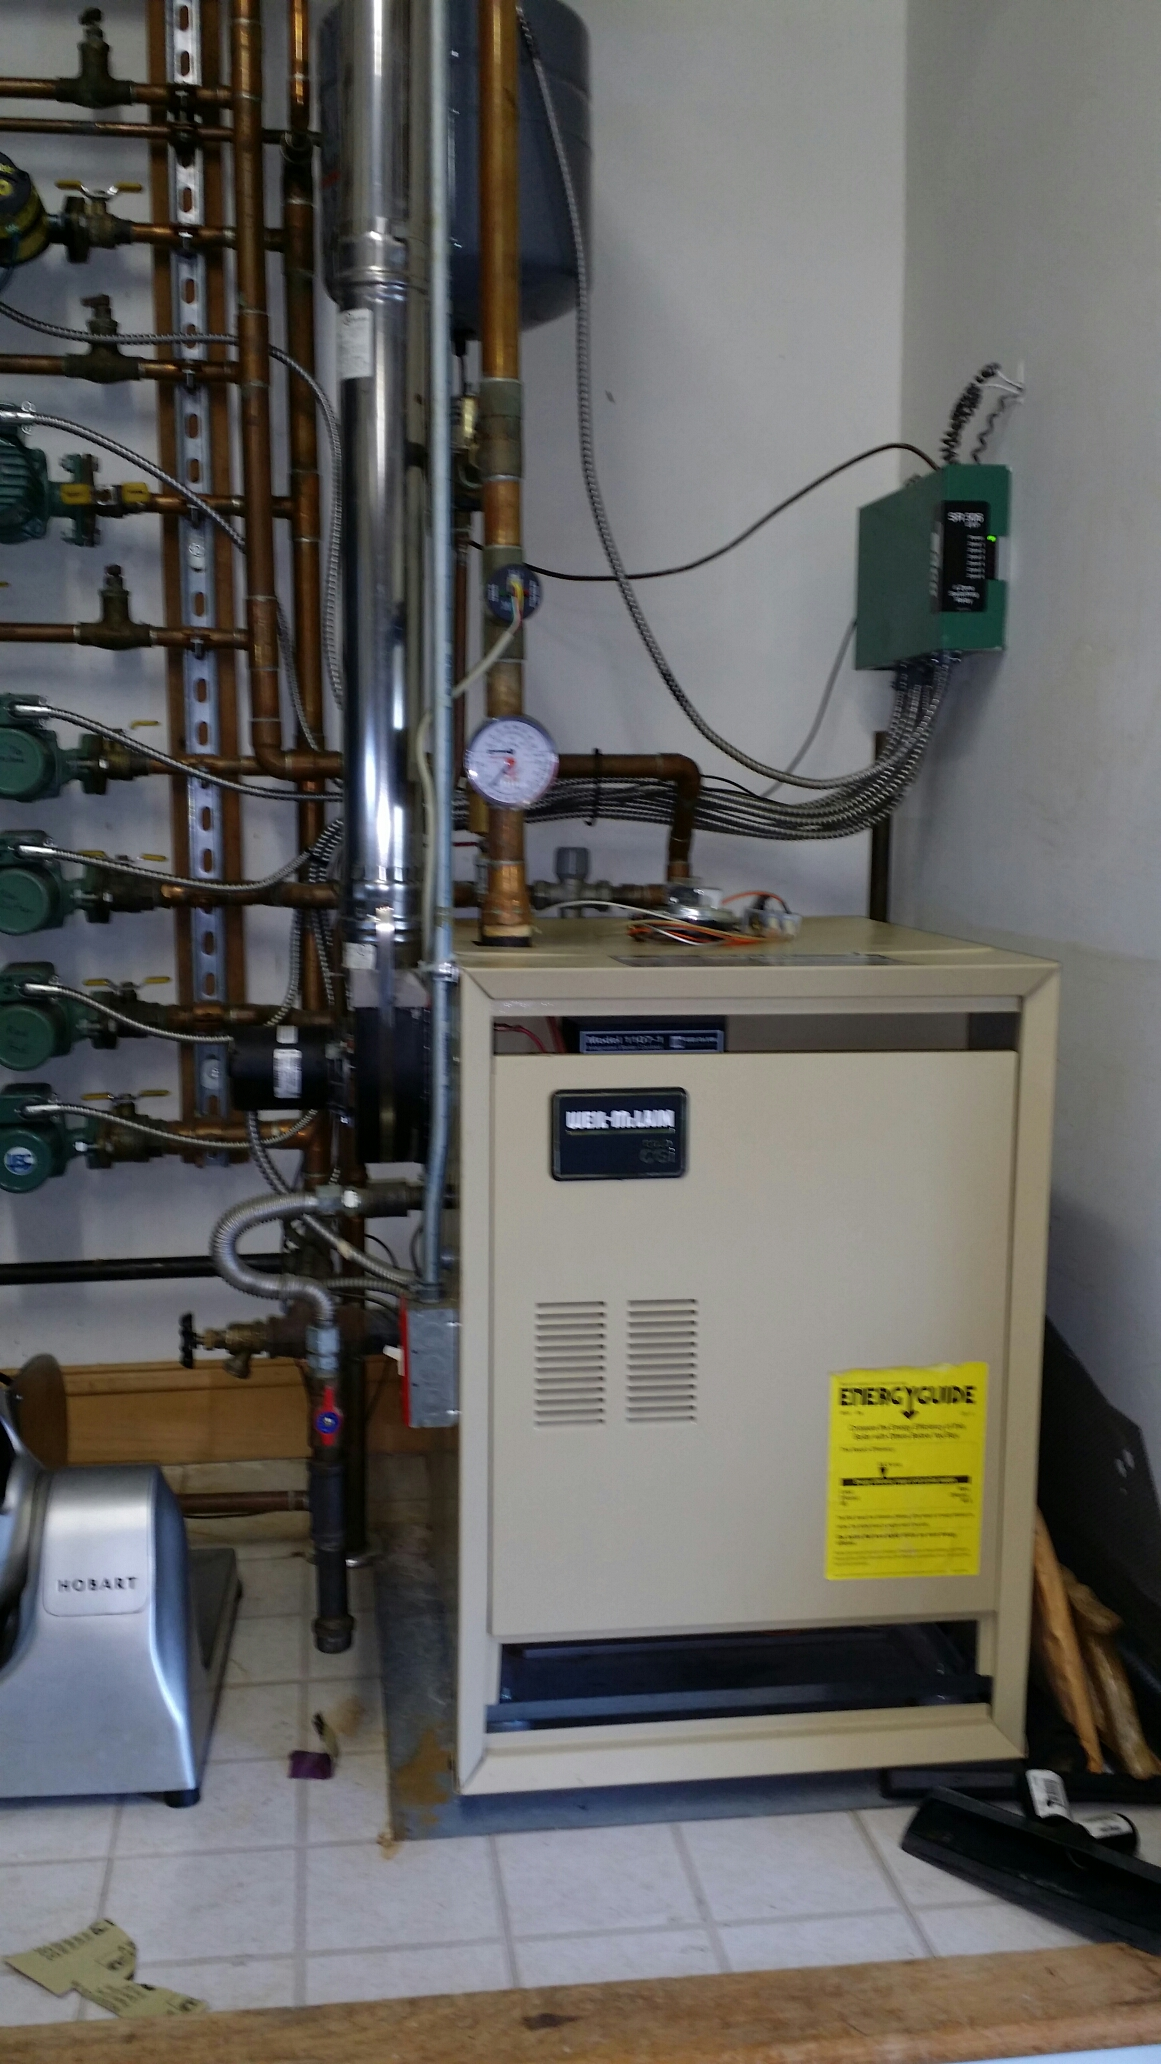 Toms River, NJ - Boiler repair. Repair pressure switch on Weil Mclain CGI gas fired boiler in Green Island area of Toms River NJ